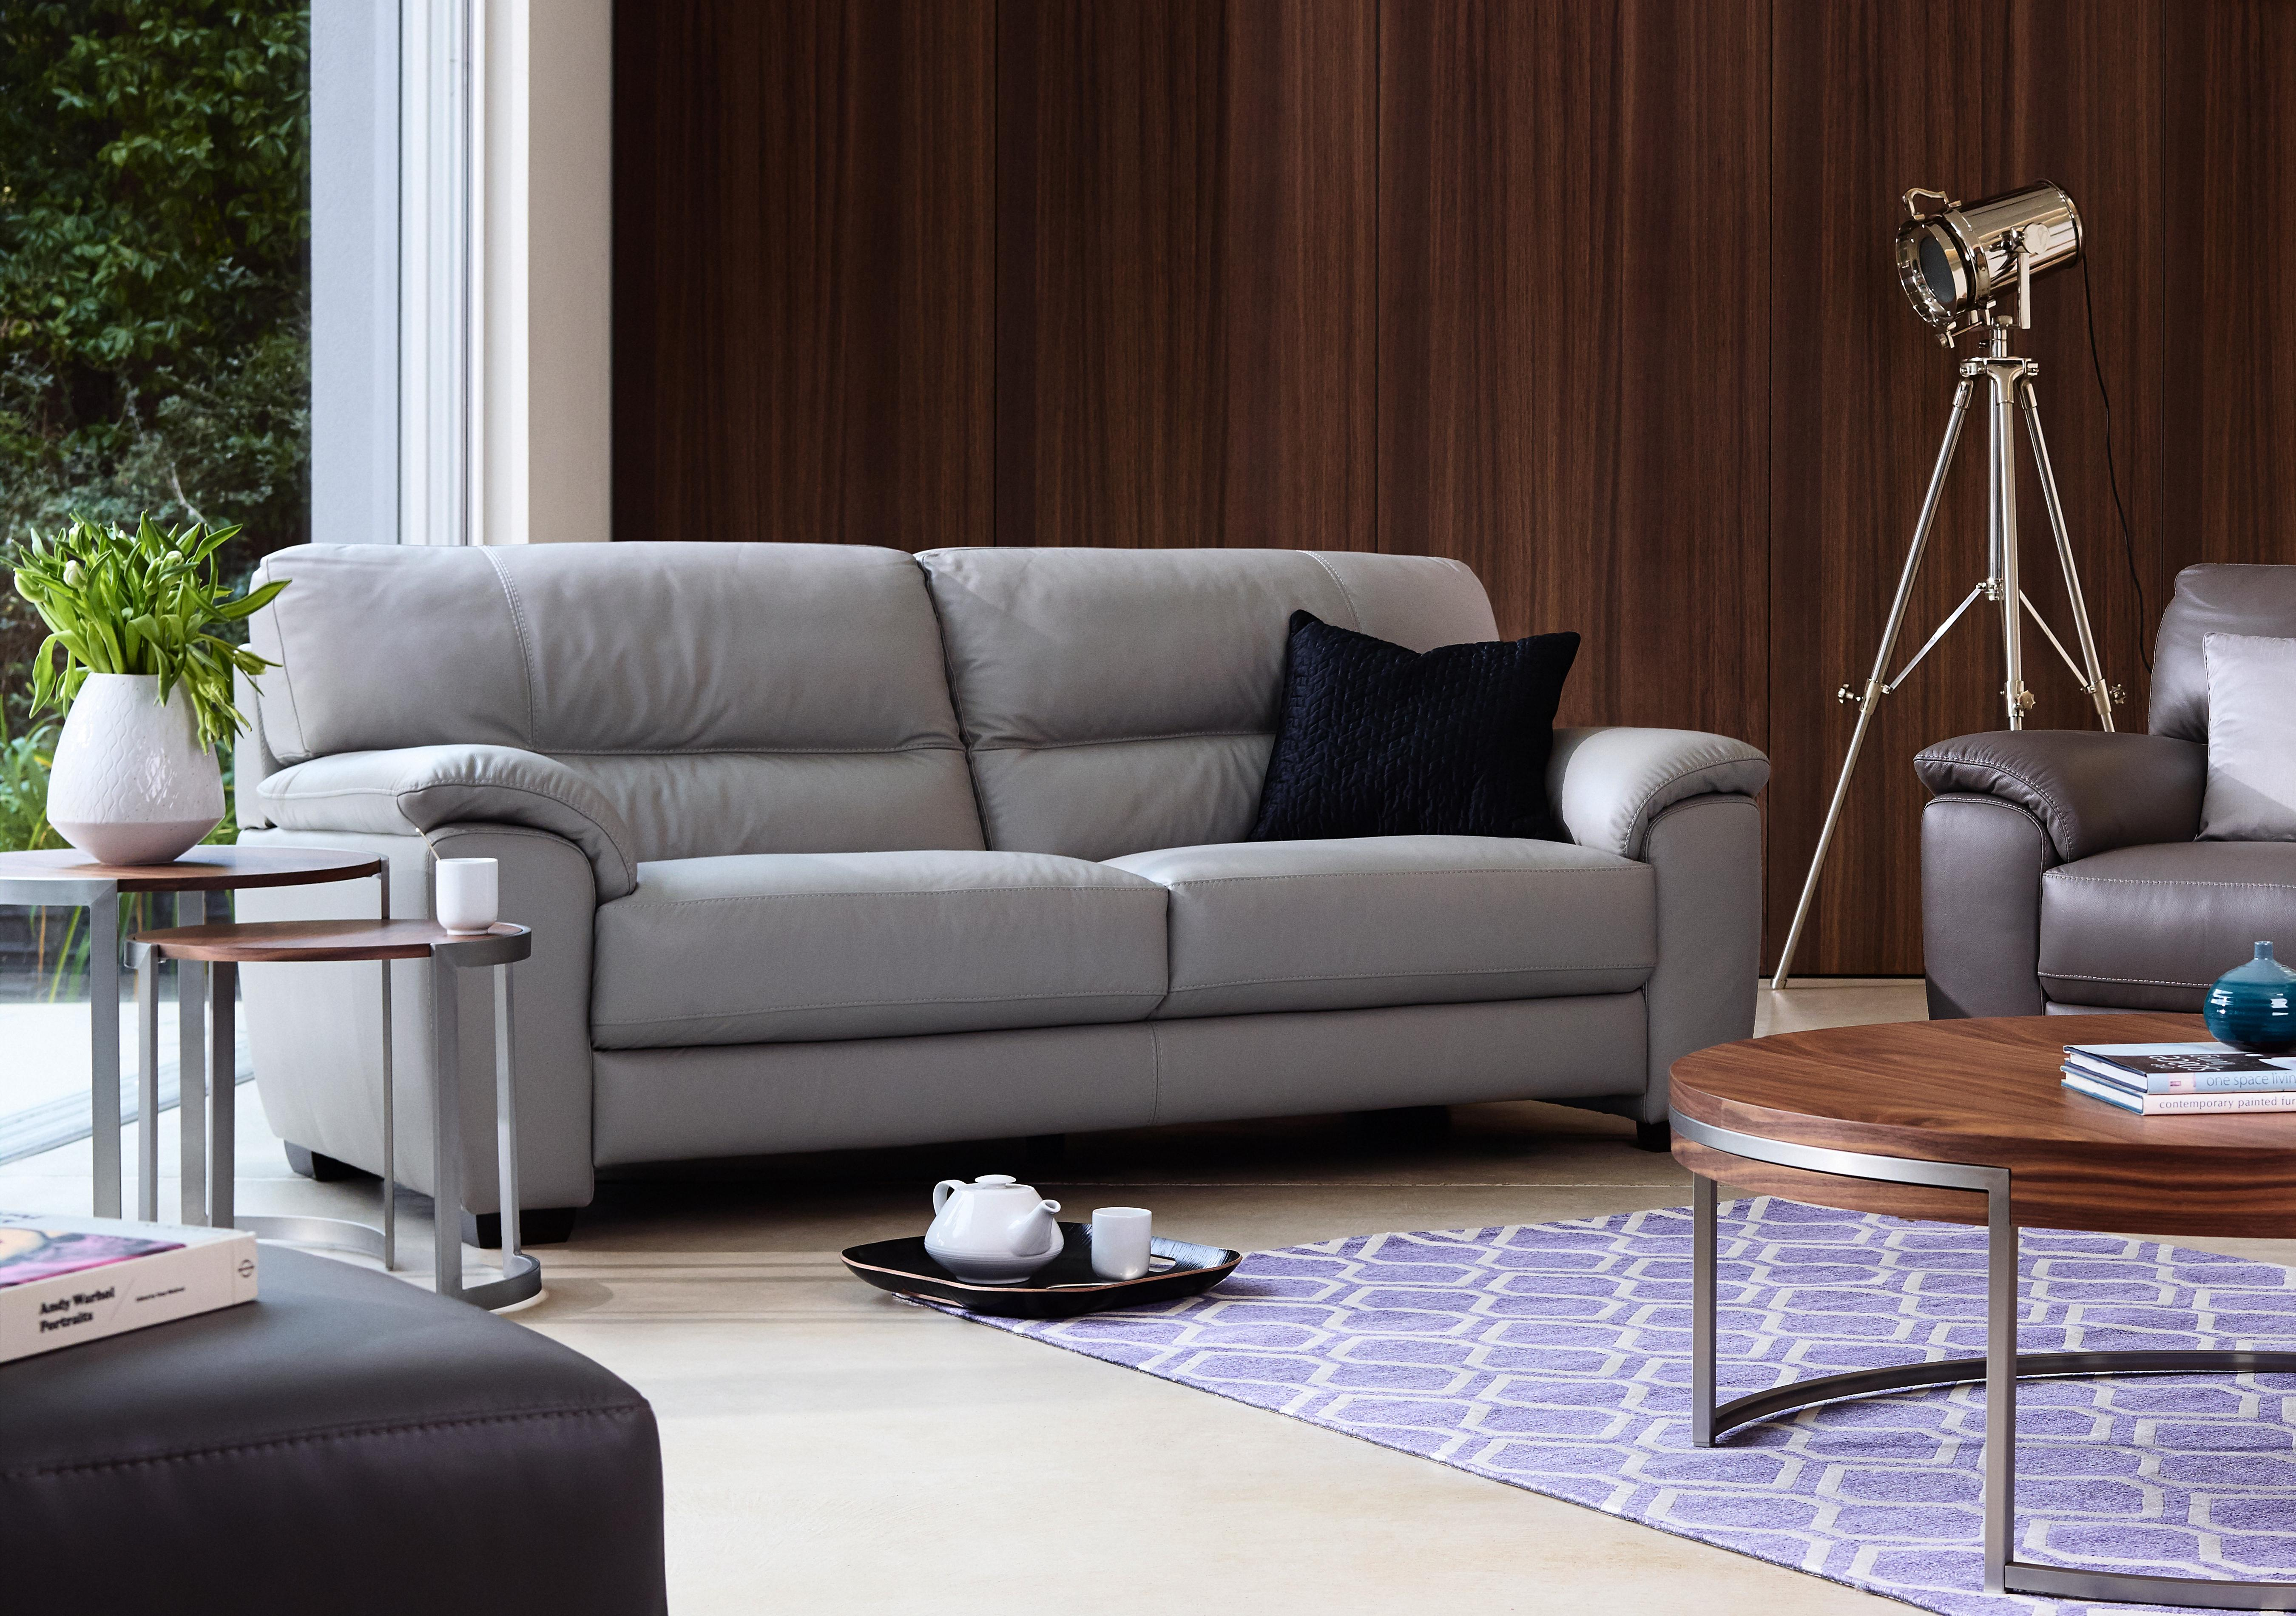 most expensive leather sofas in the world large cream throws for furniture village limited stock available